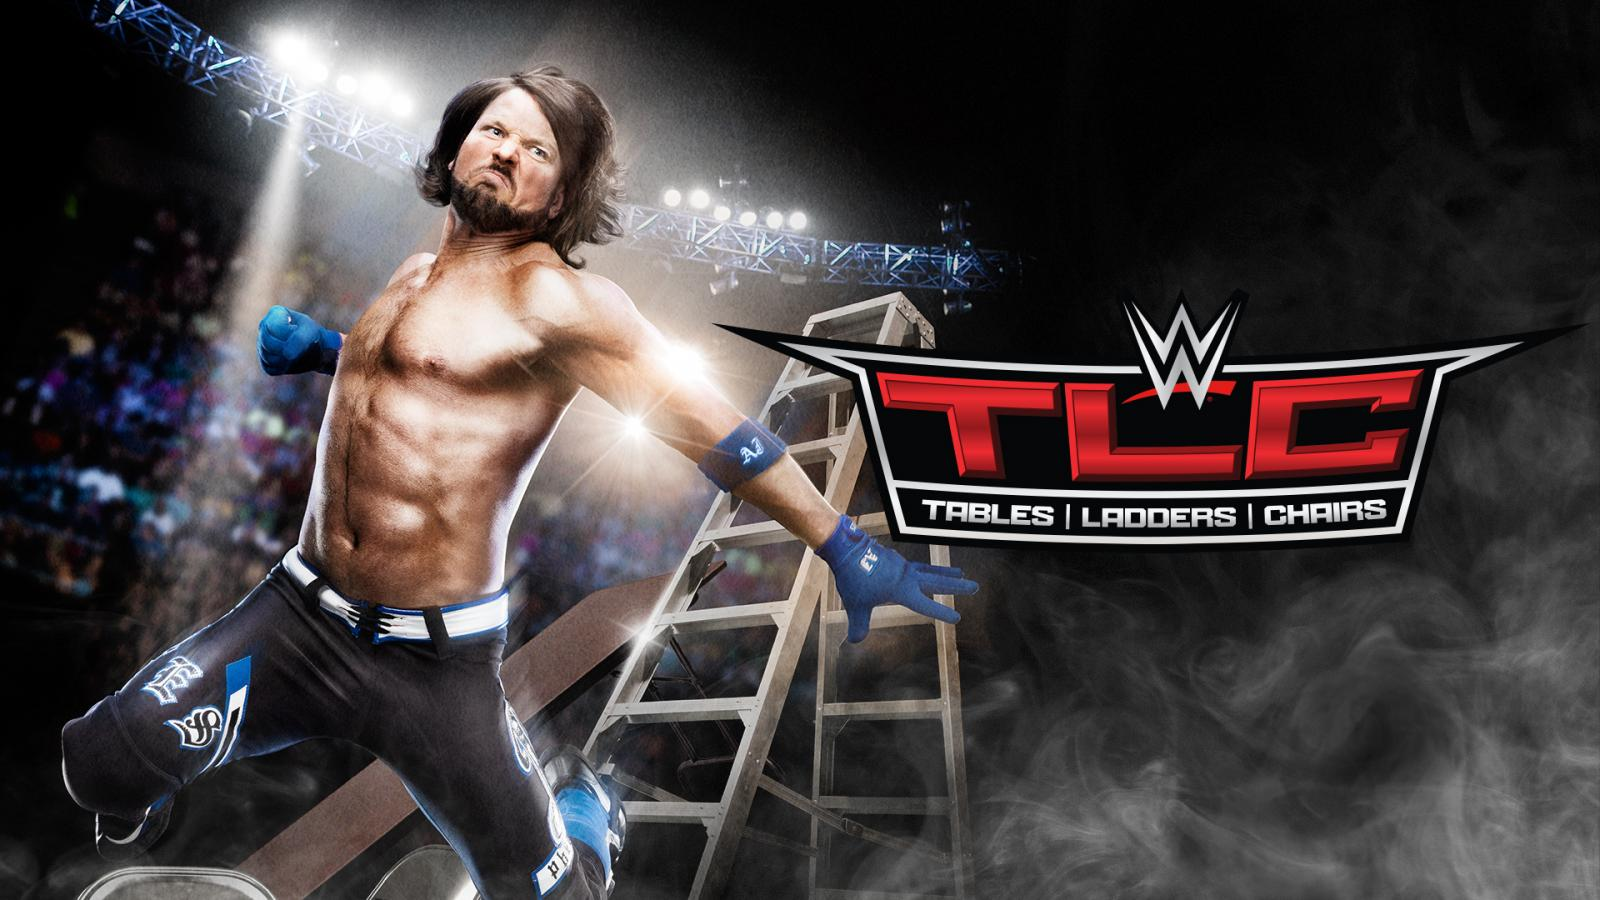 Wwe tables ladders and chairs 2013 poster - Wwe Tables Ladders And Chairs 2013 Poster 59